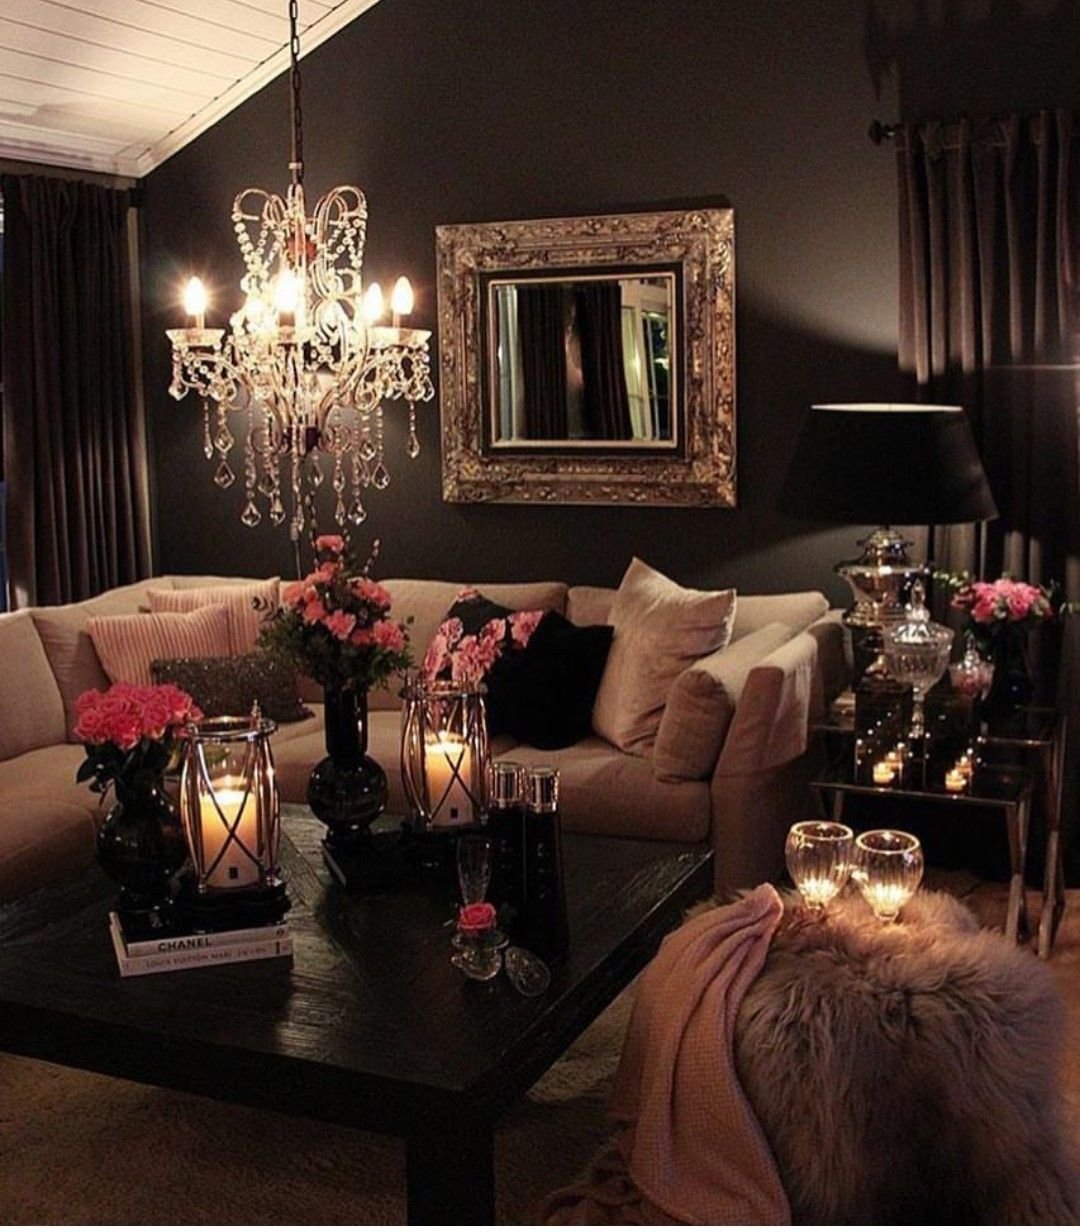 Pin By Stephy Naglich On Decor Romantic Living Room Living Room Remodel Home Living Room